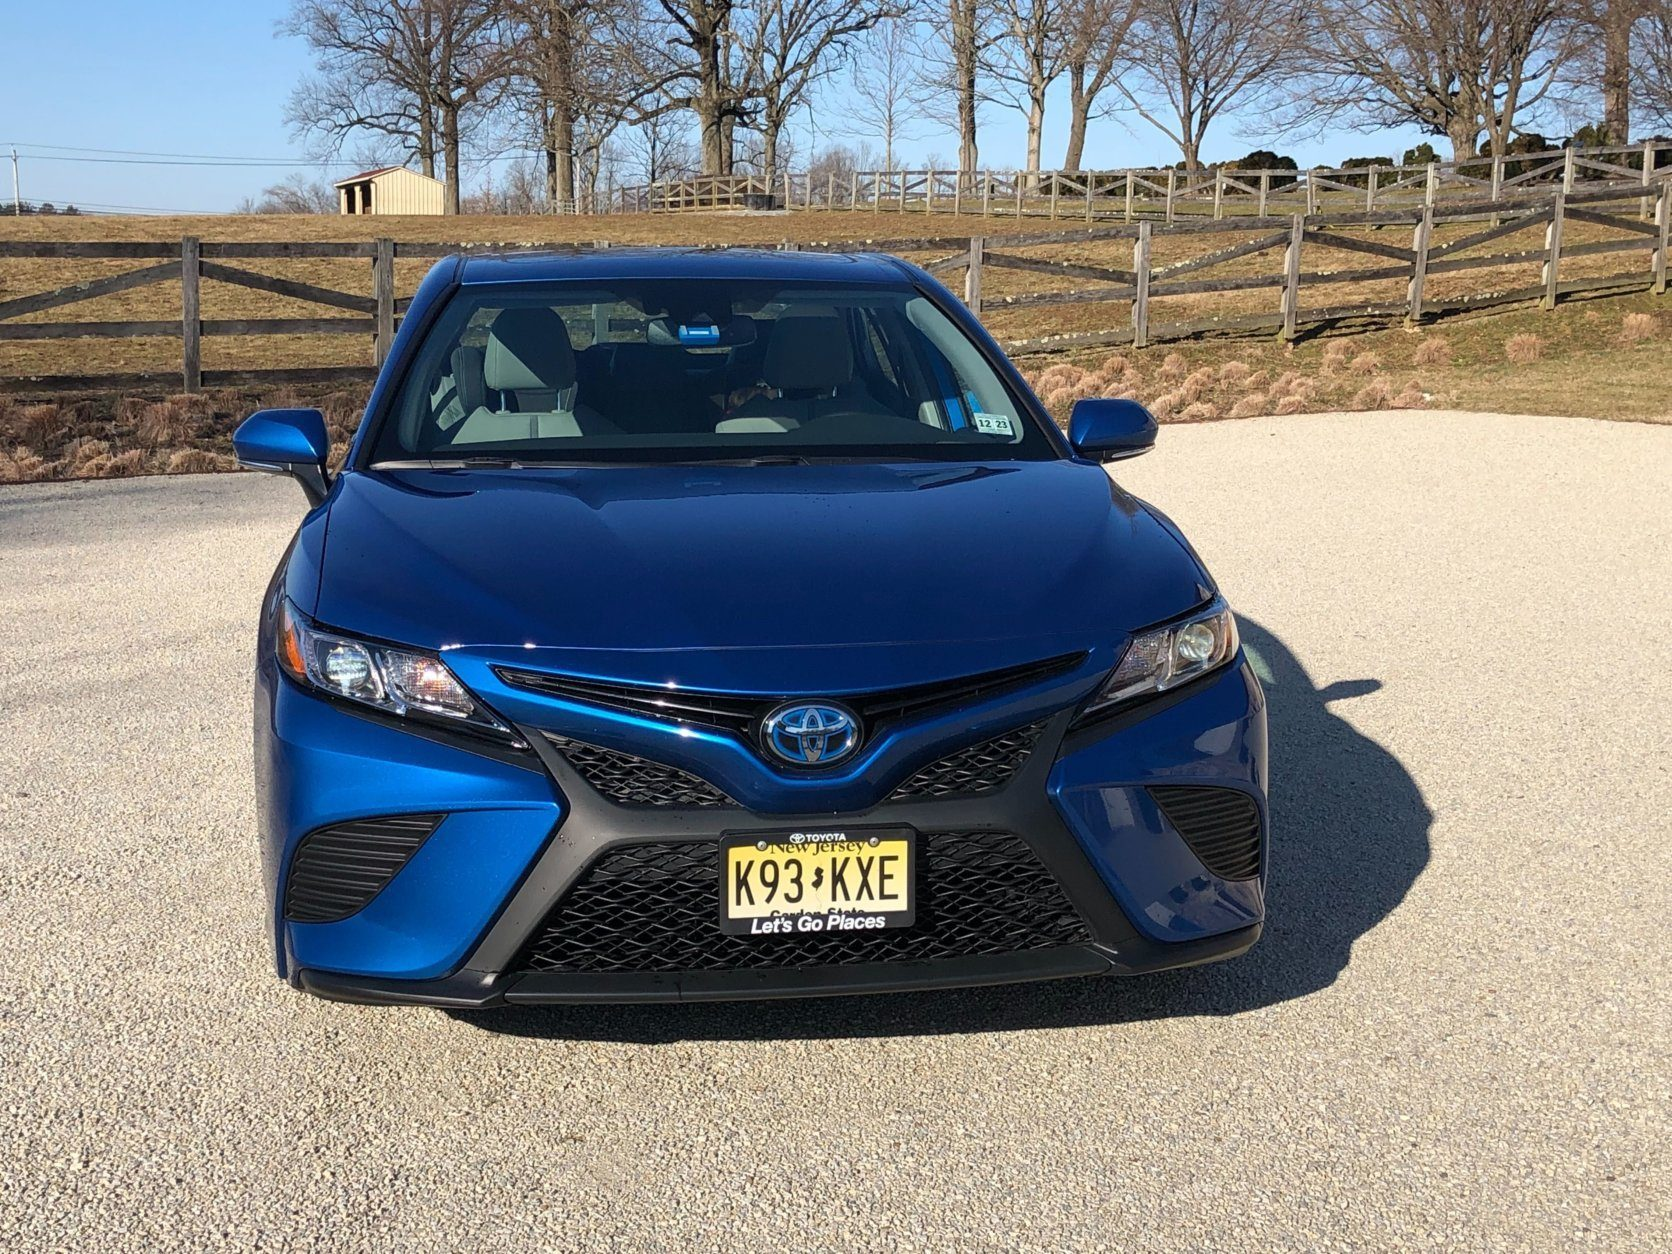 Front end of the 2019 Camry